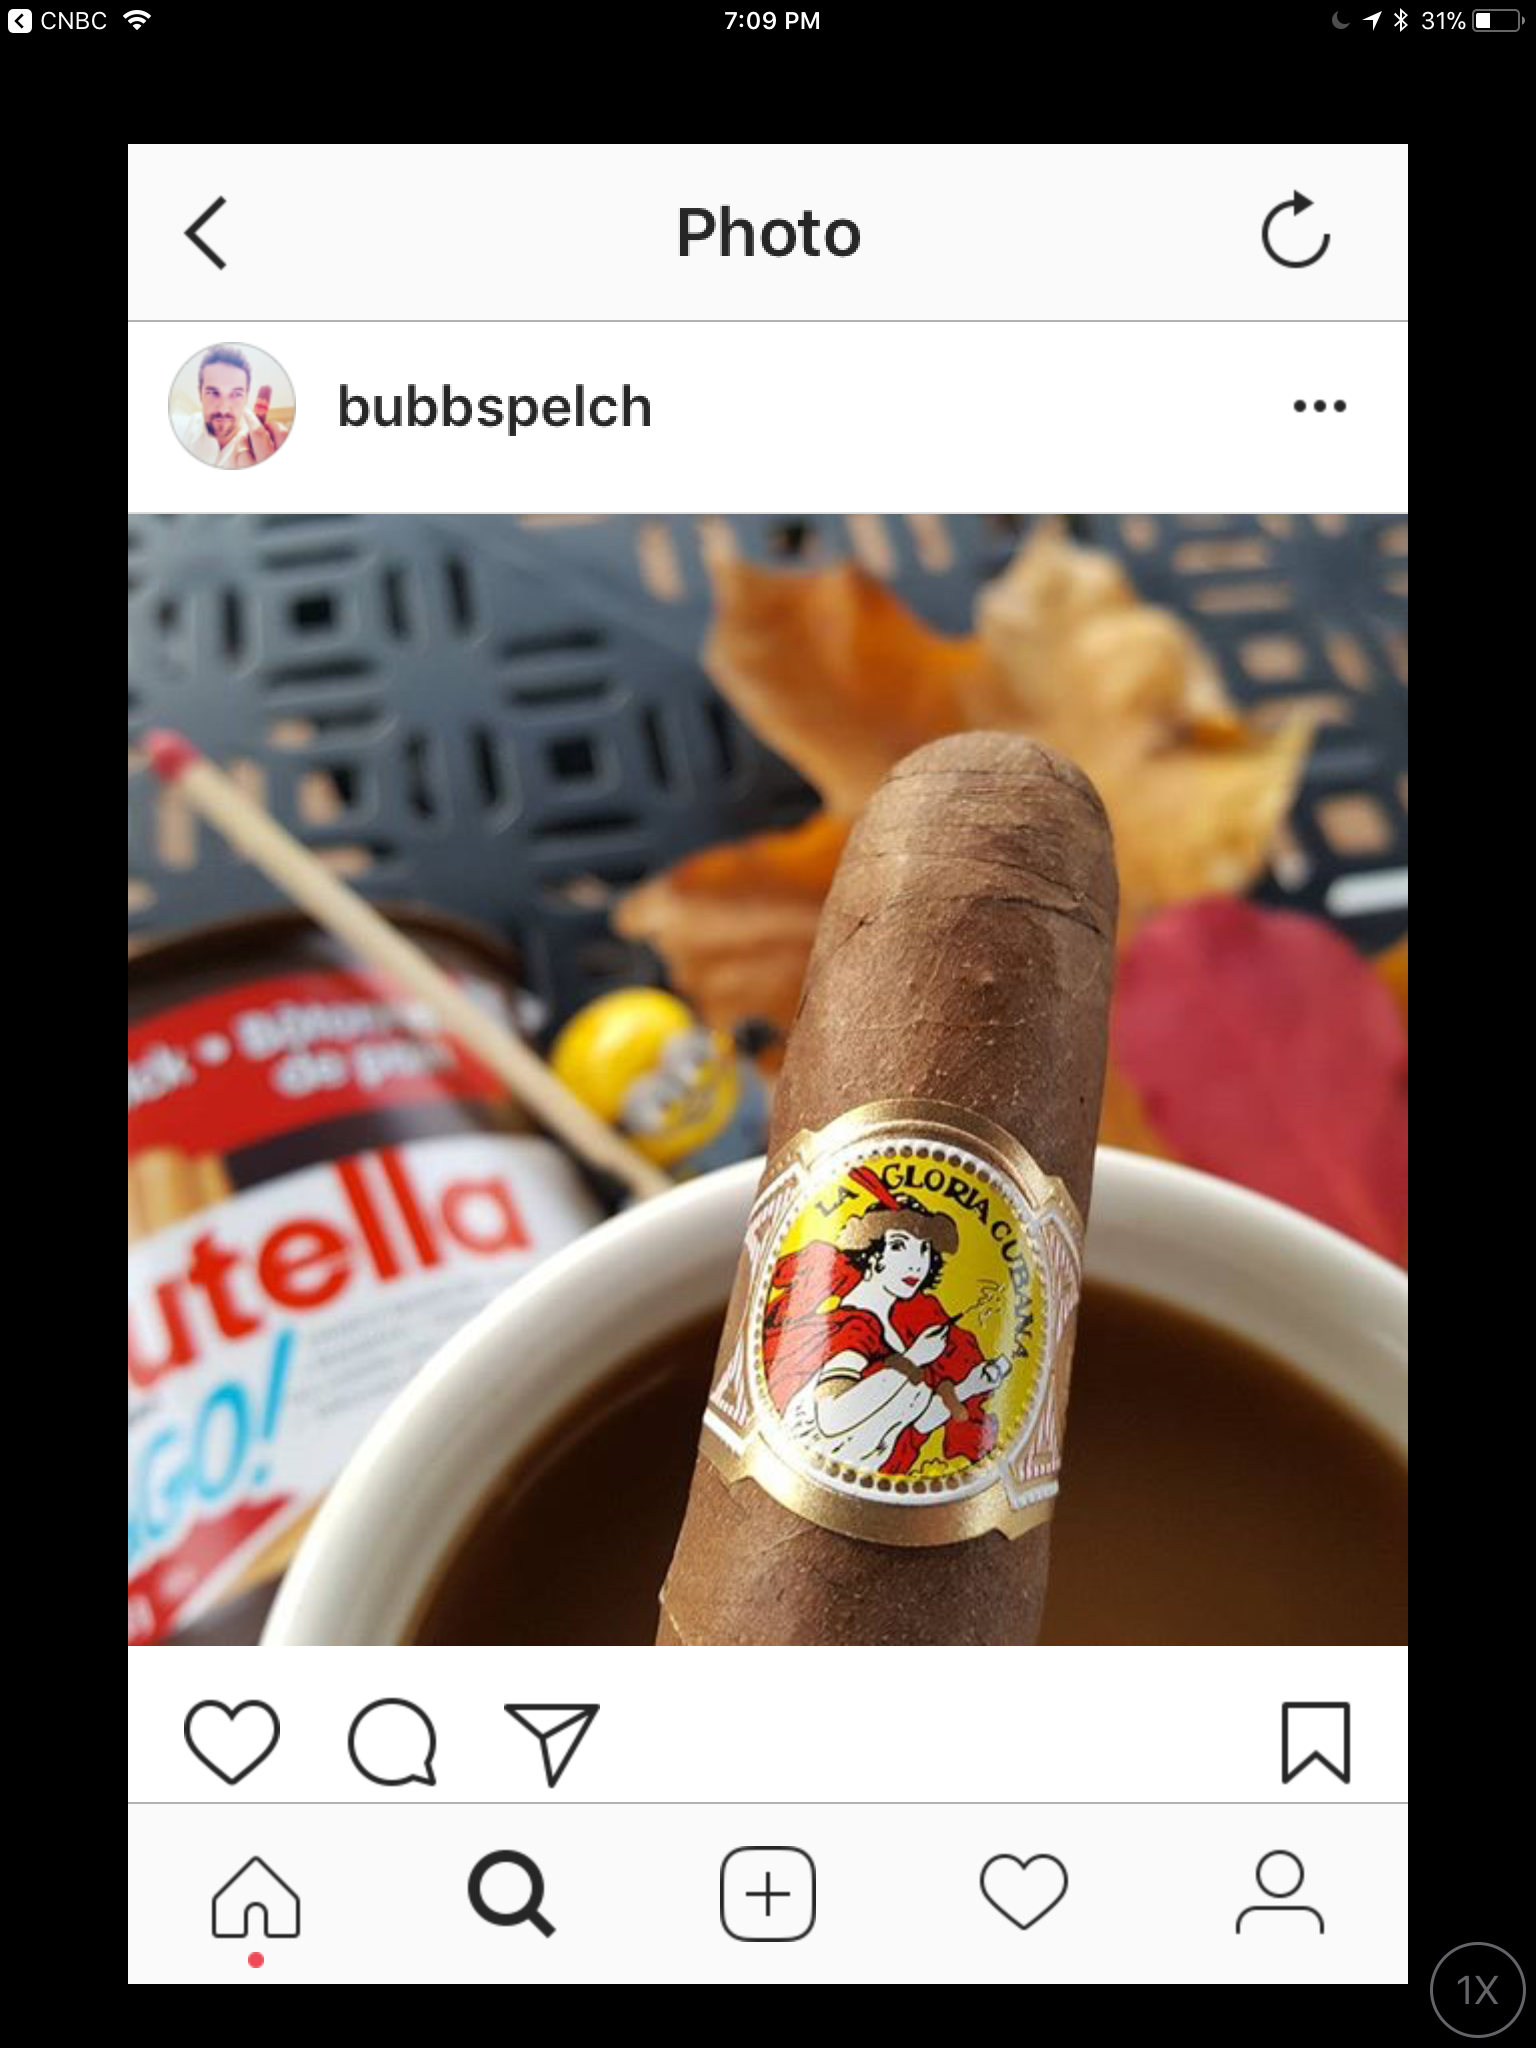 la gloria cubana cigars Instagram post by permission image